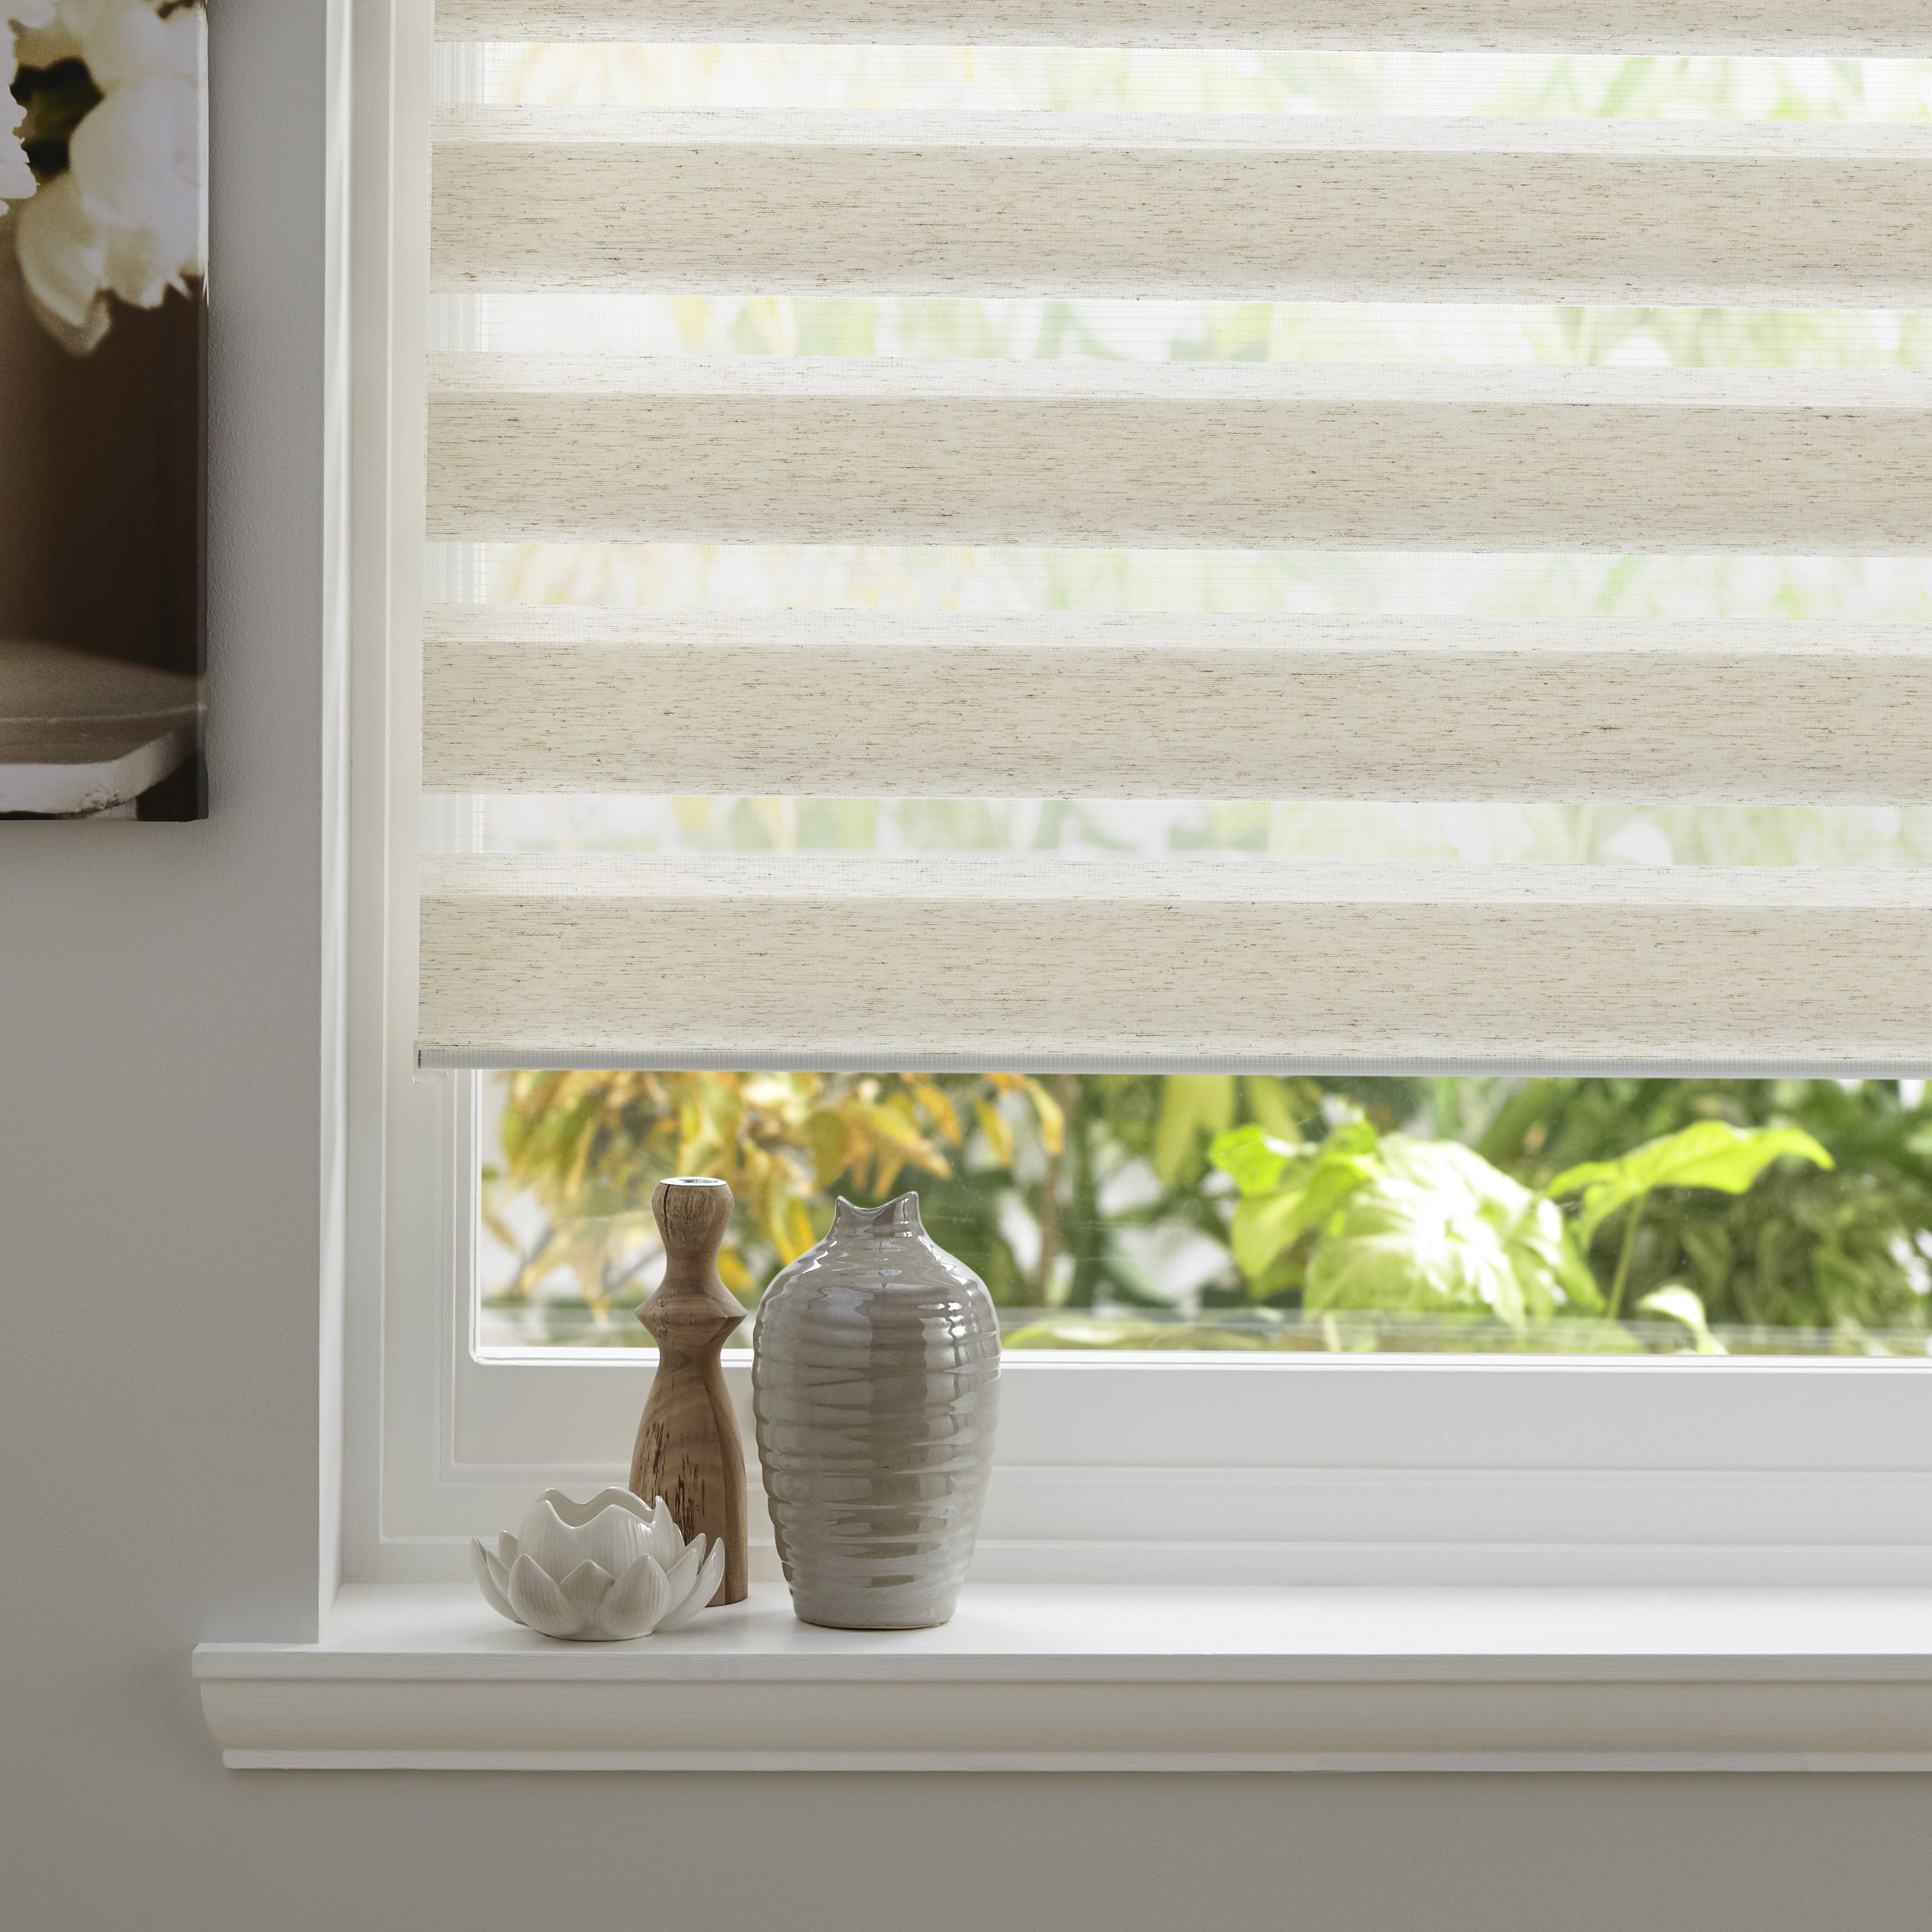 Colours Day & Night Corded Cream Roller Blind